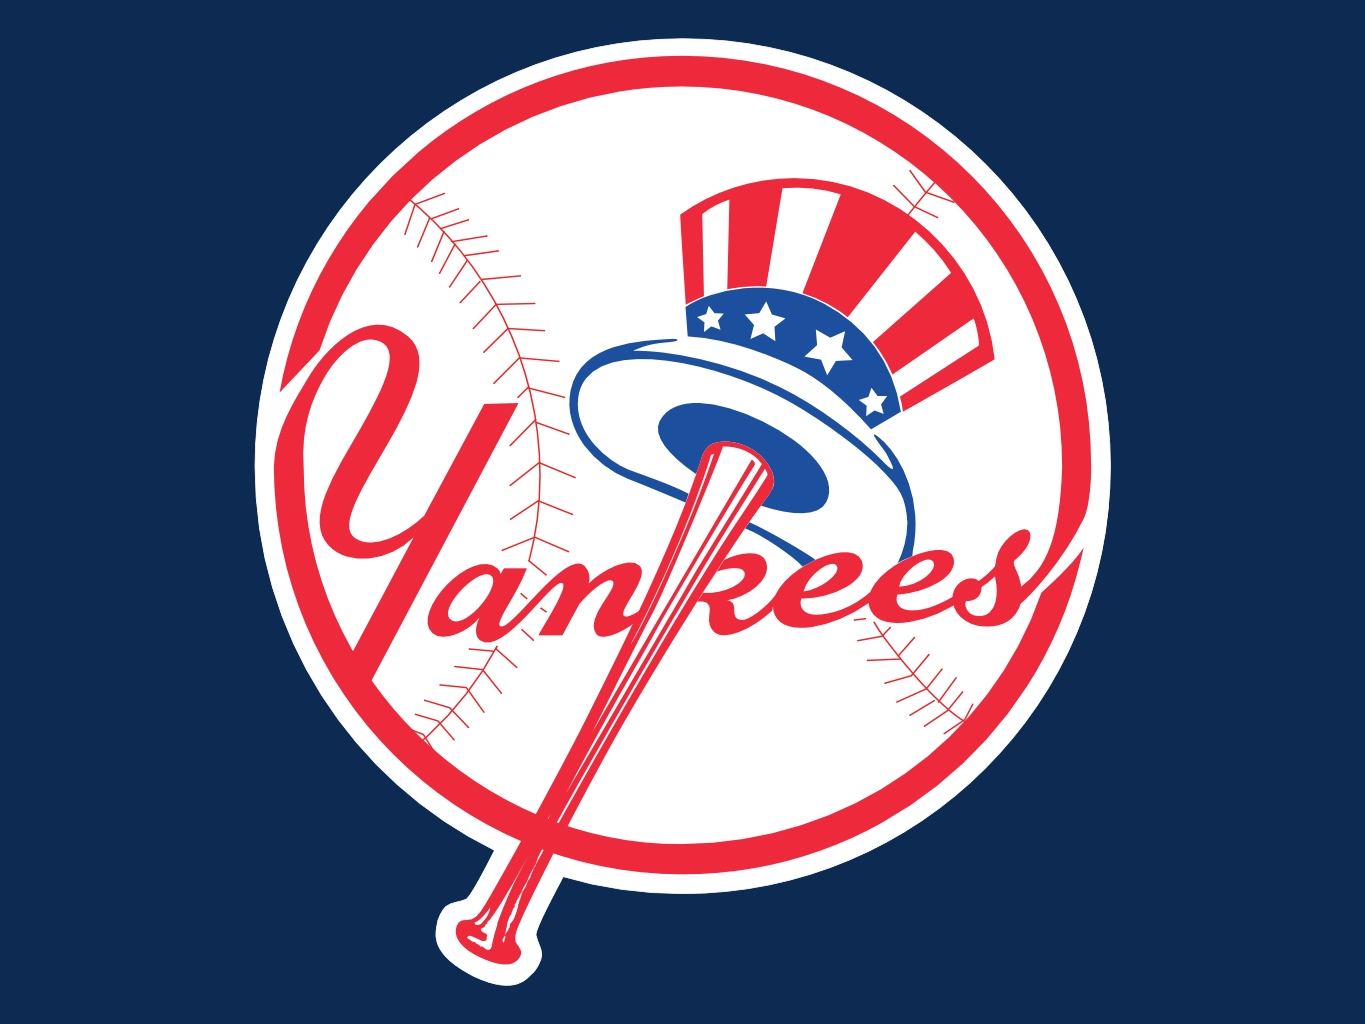 New york yankees clipart logo graphic free download Yankees Clipart - Clipart Kid graphic free download